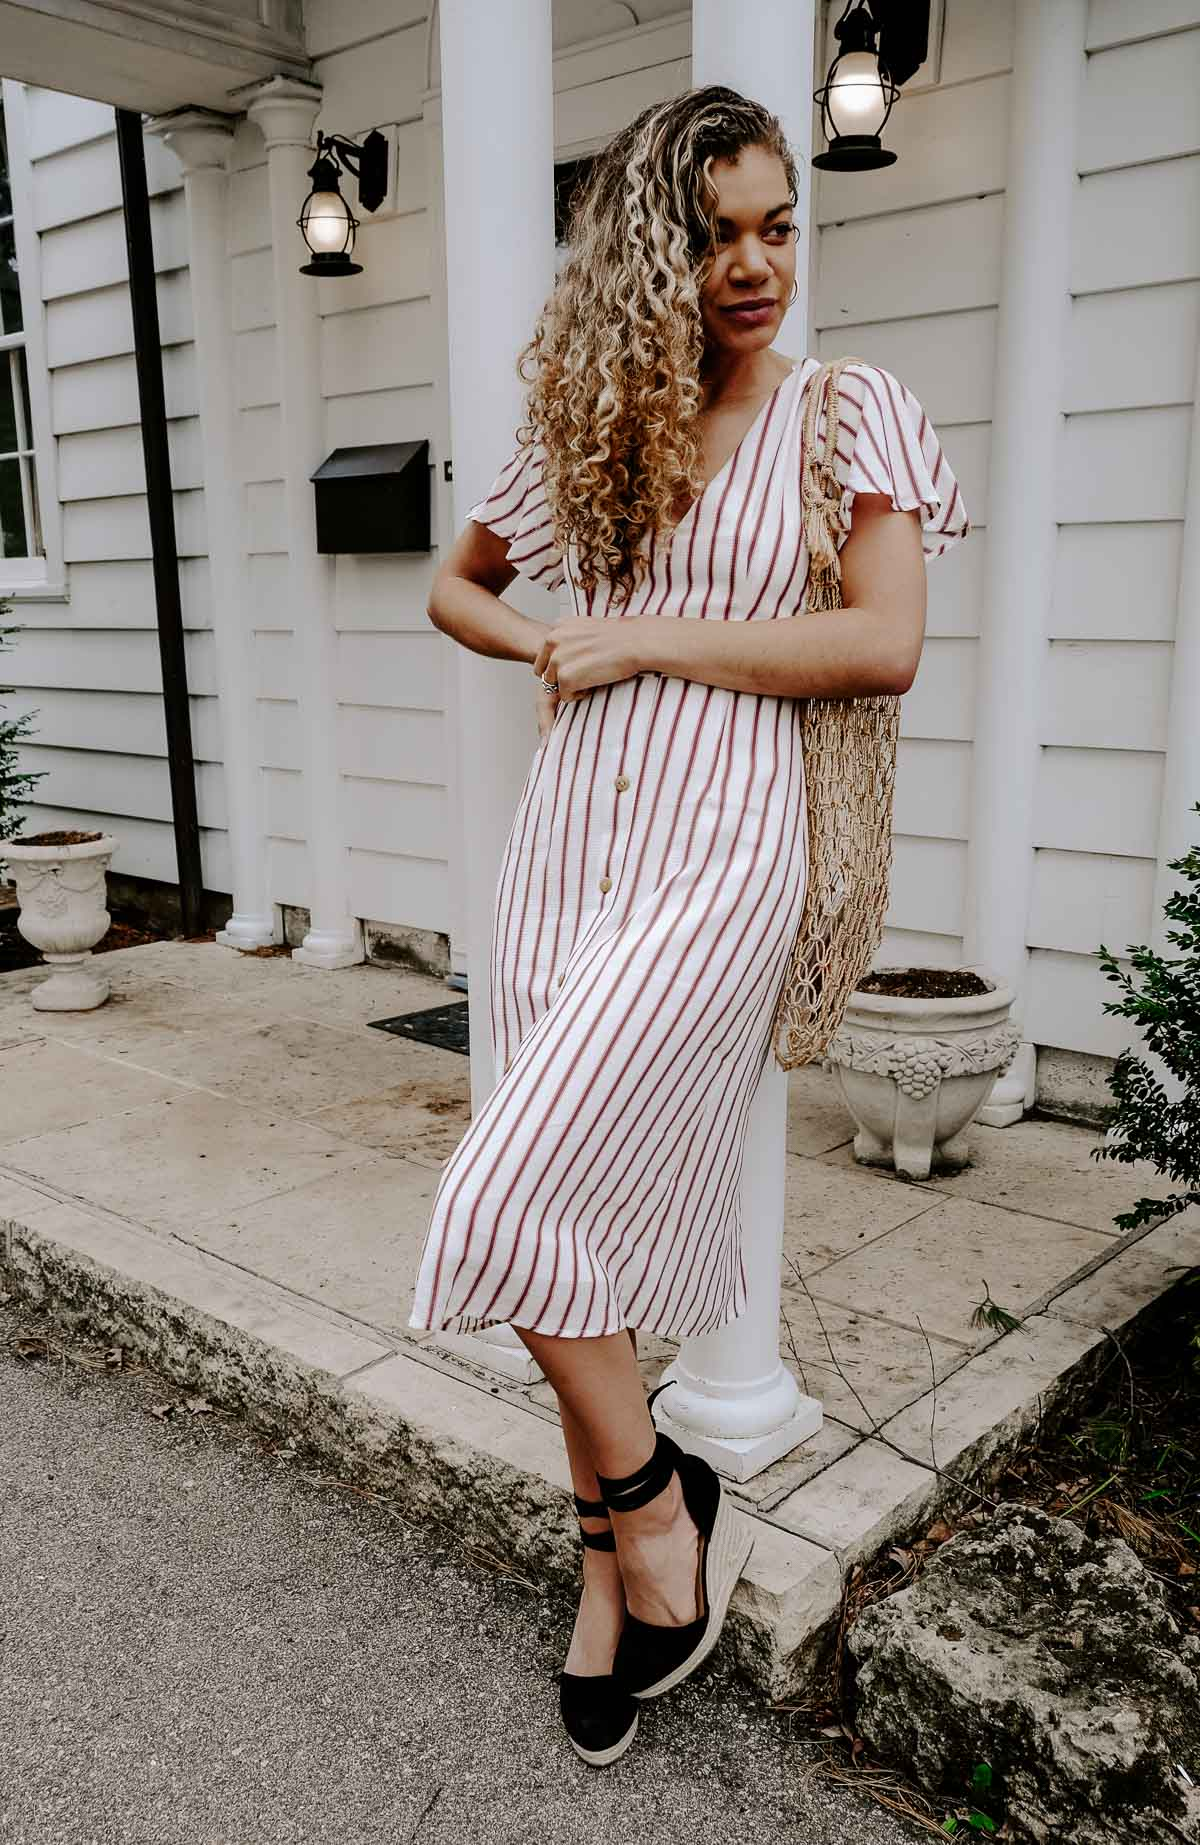 red striped dress inspired by french fashion